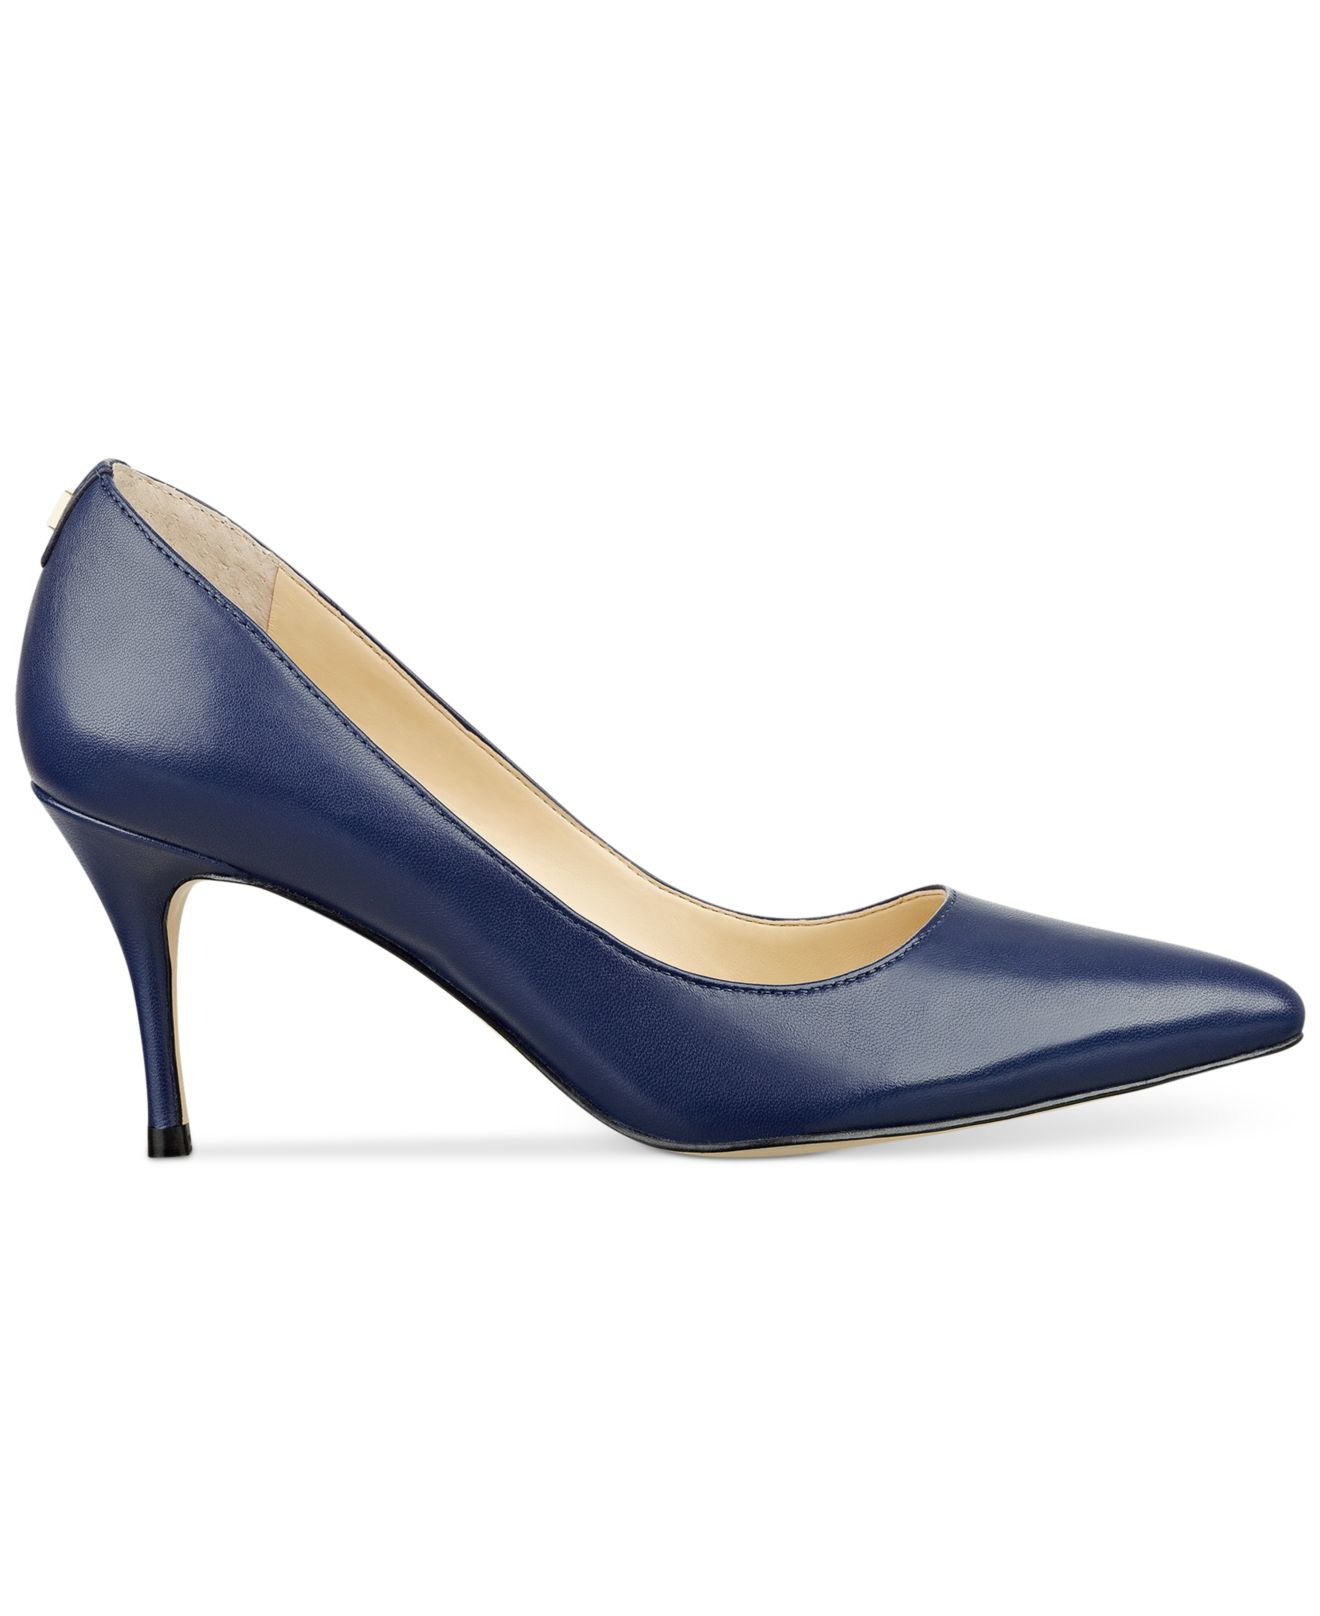 Ivanka trump Tirra Leather Pumps in Blue (Navy Blue Leather) | Lyst